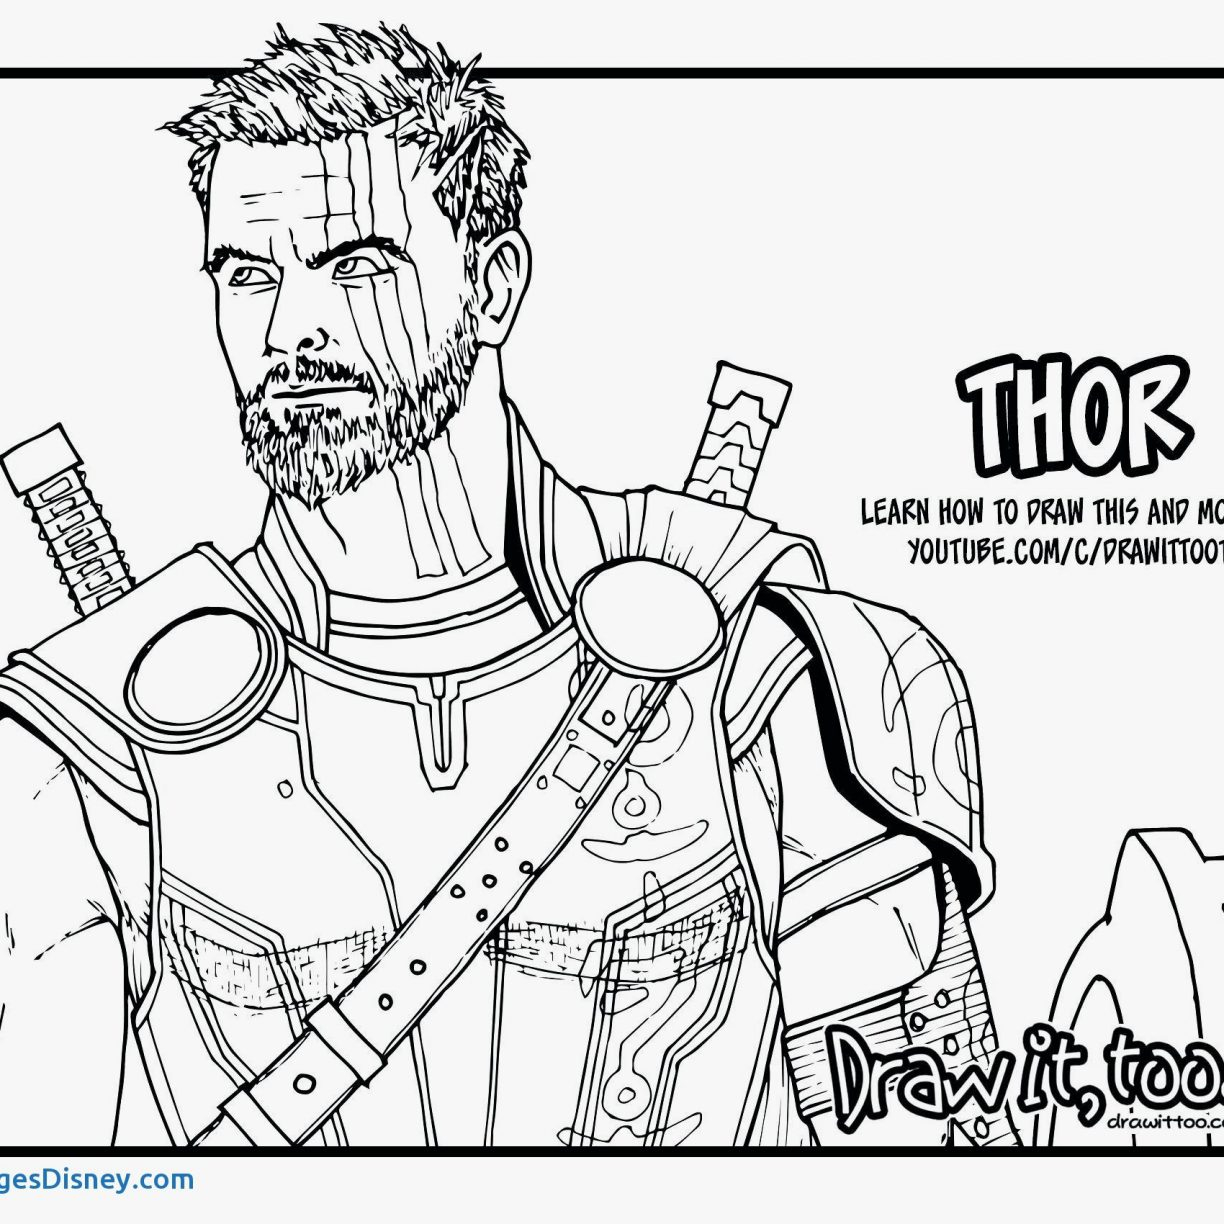 Thor Coloring Pages Thor Coloring Pages Printable Page For Kids